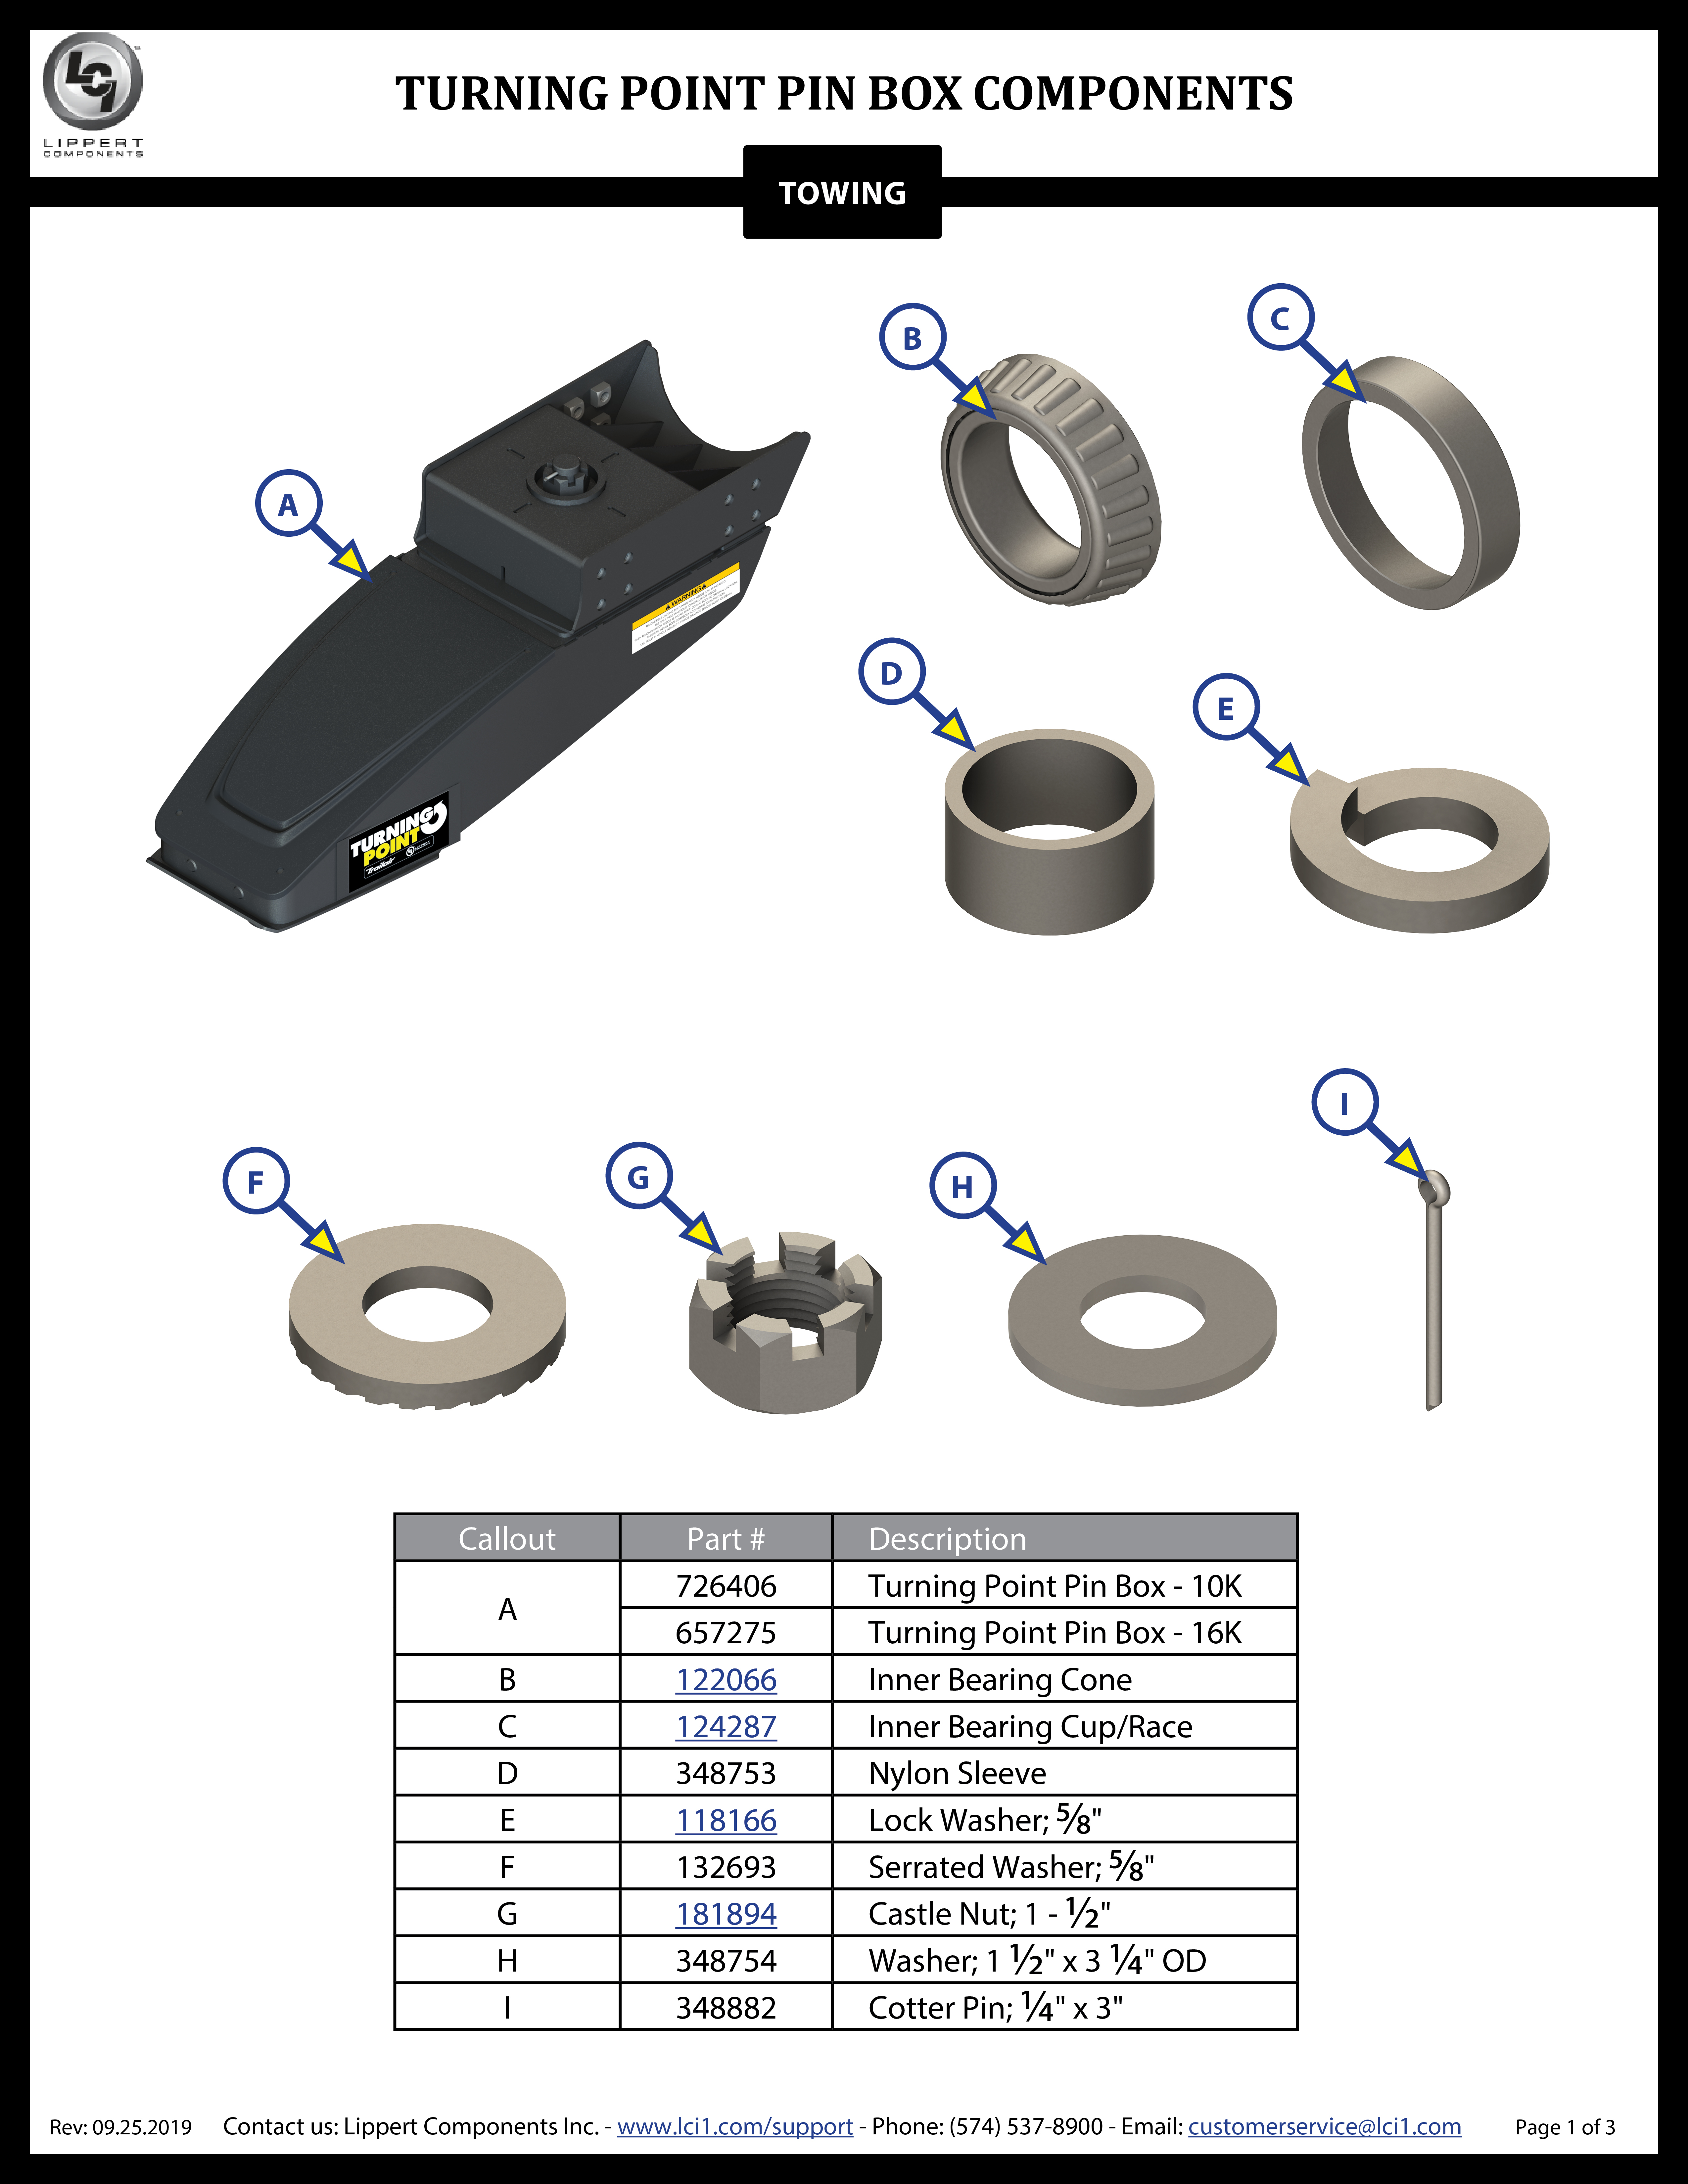 Turning Point™ Pin Box Components